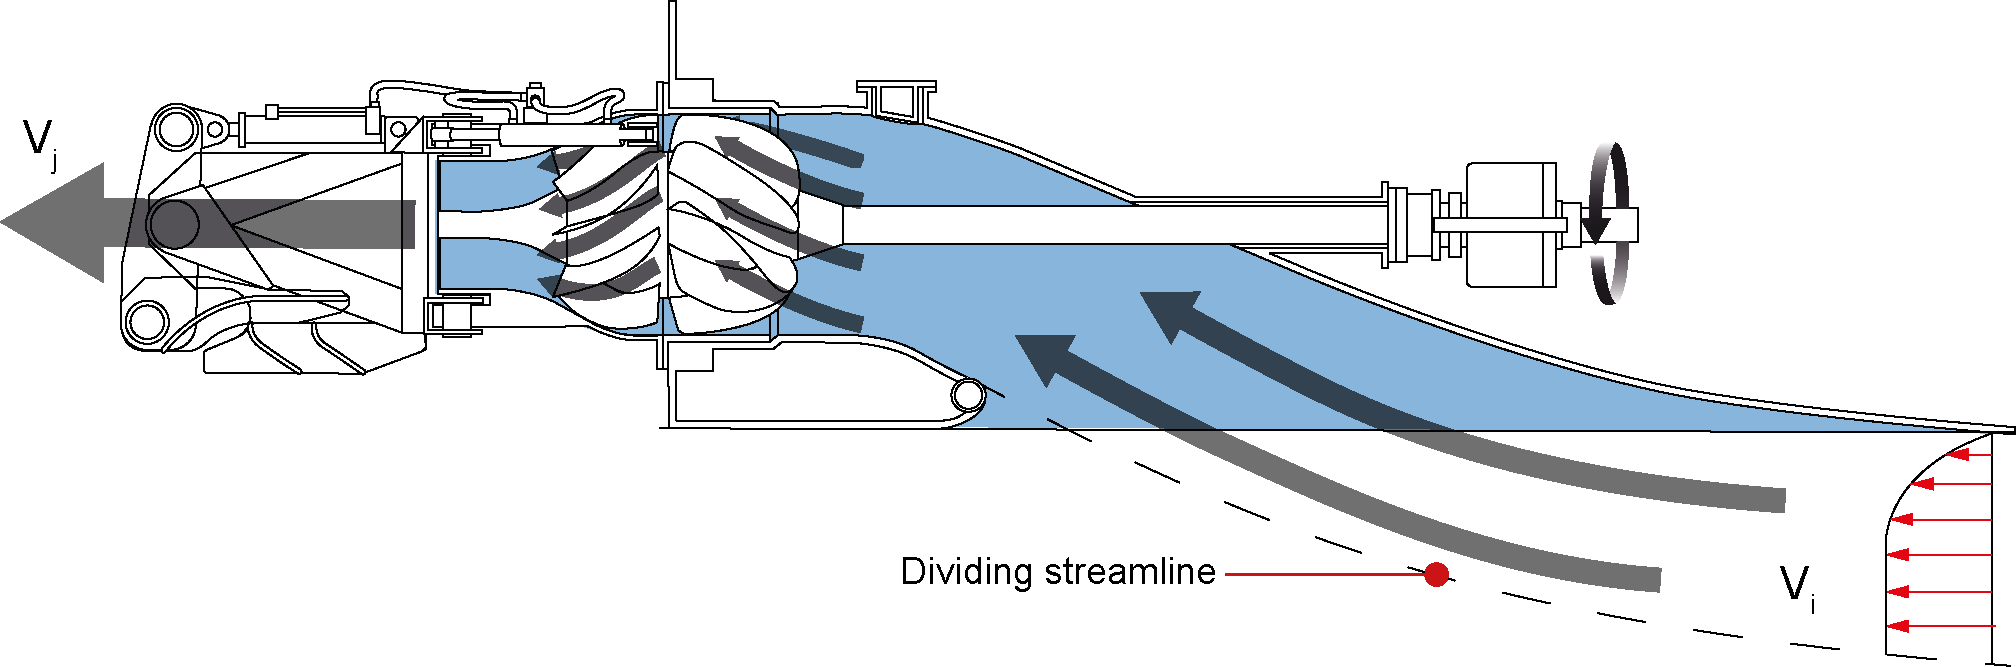 Modular waterjets principle 2